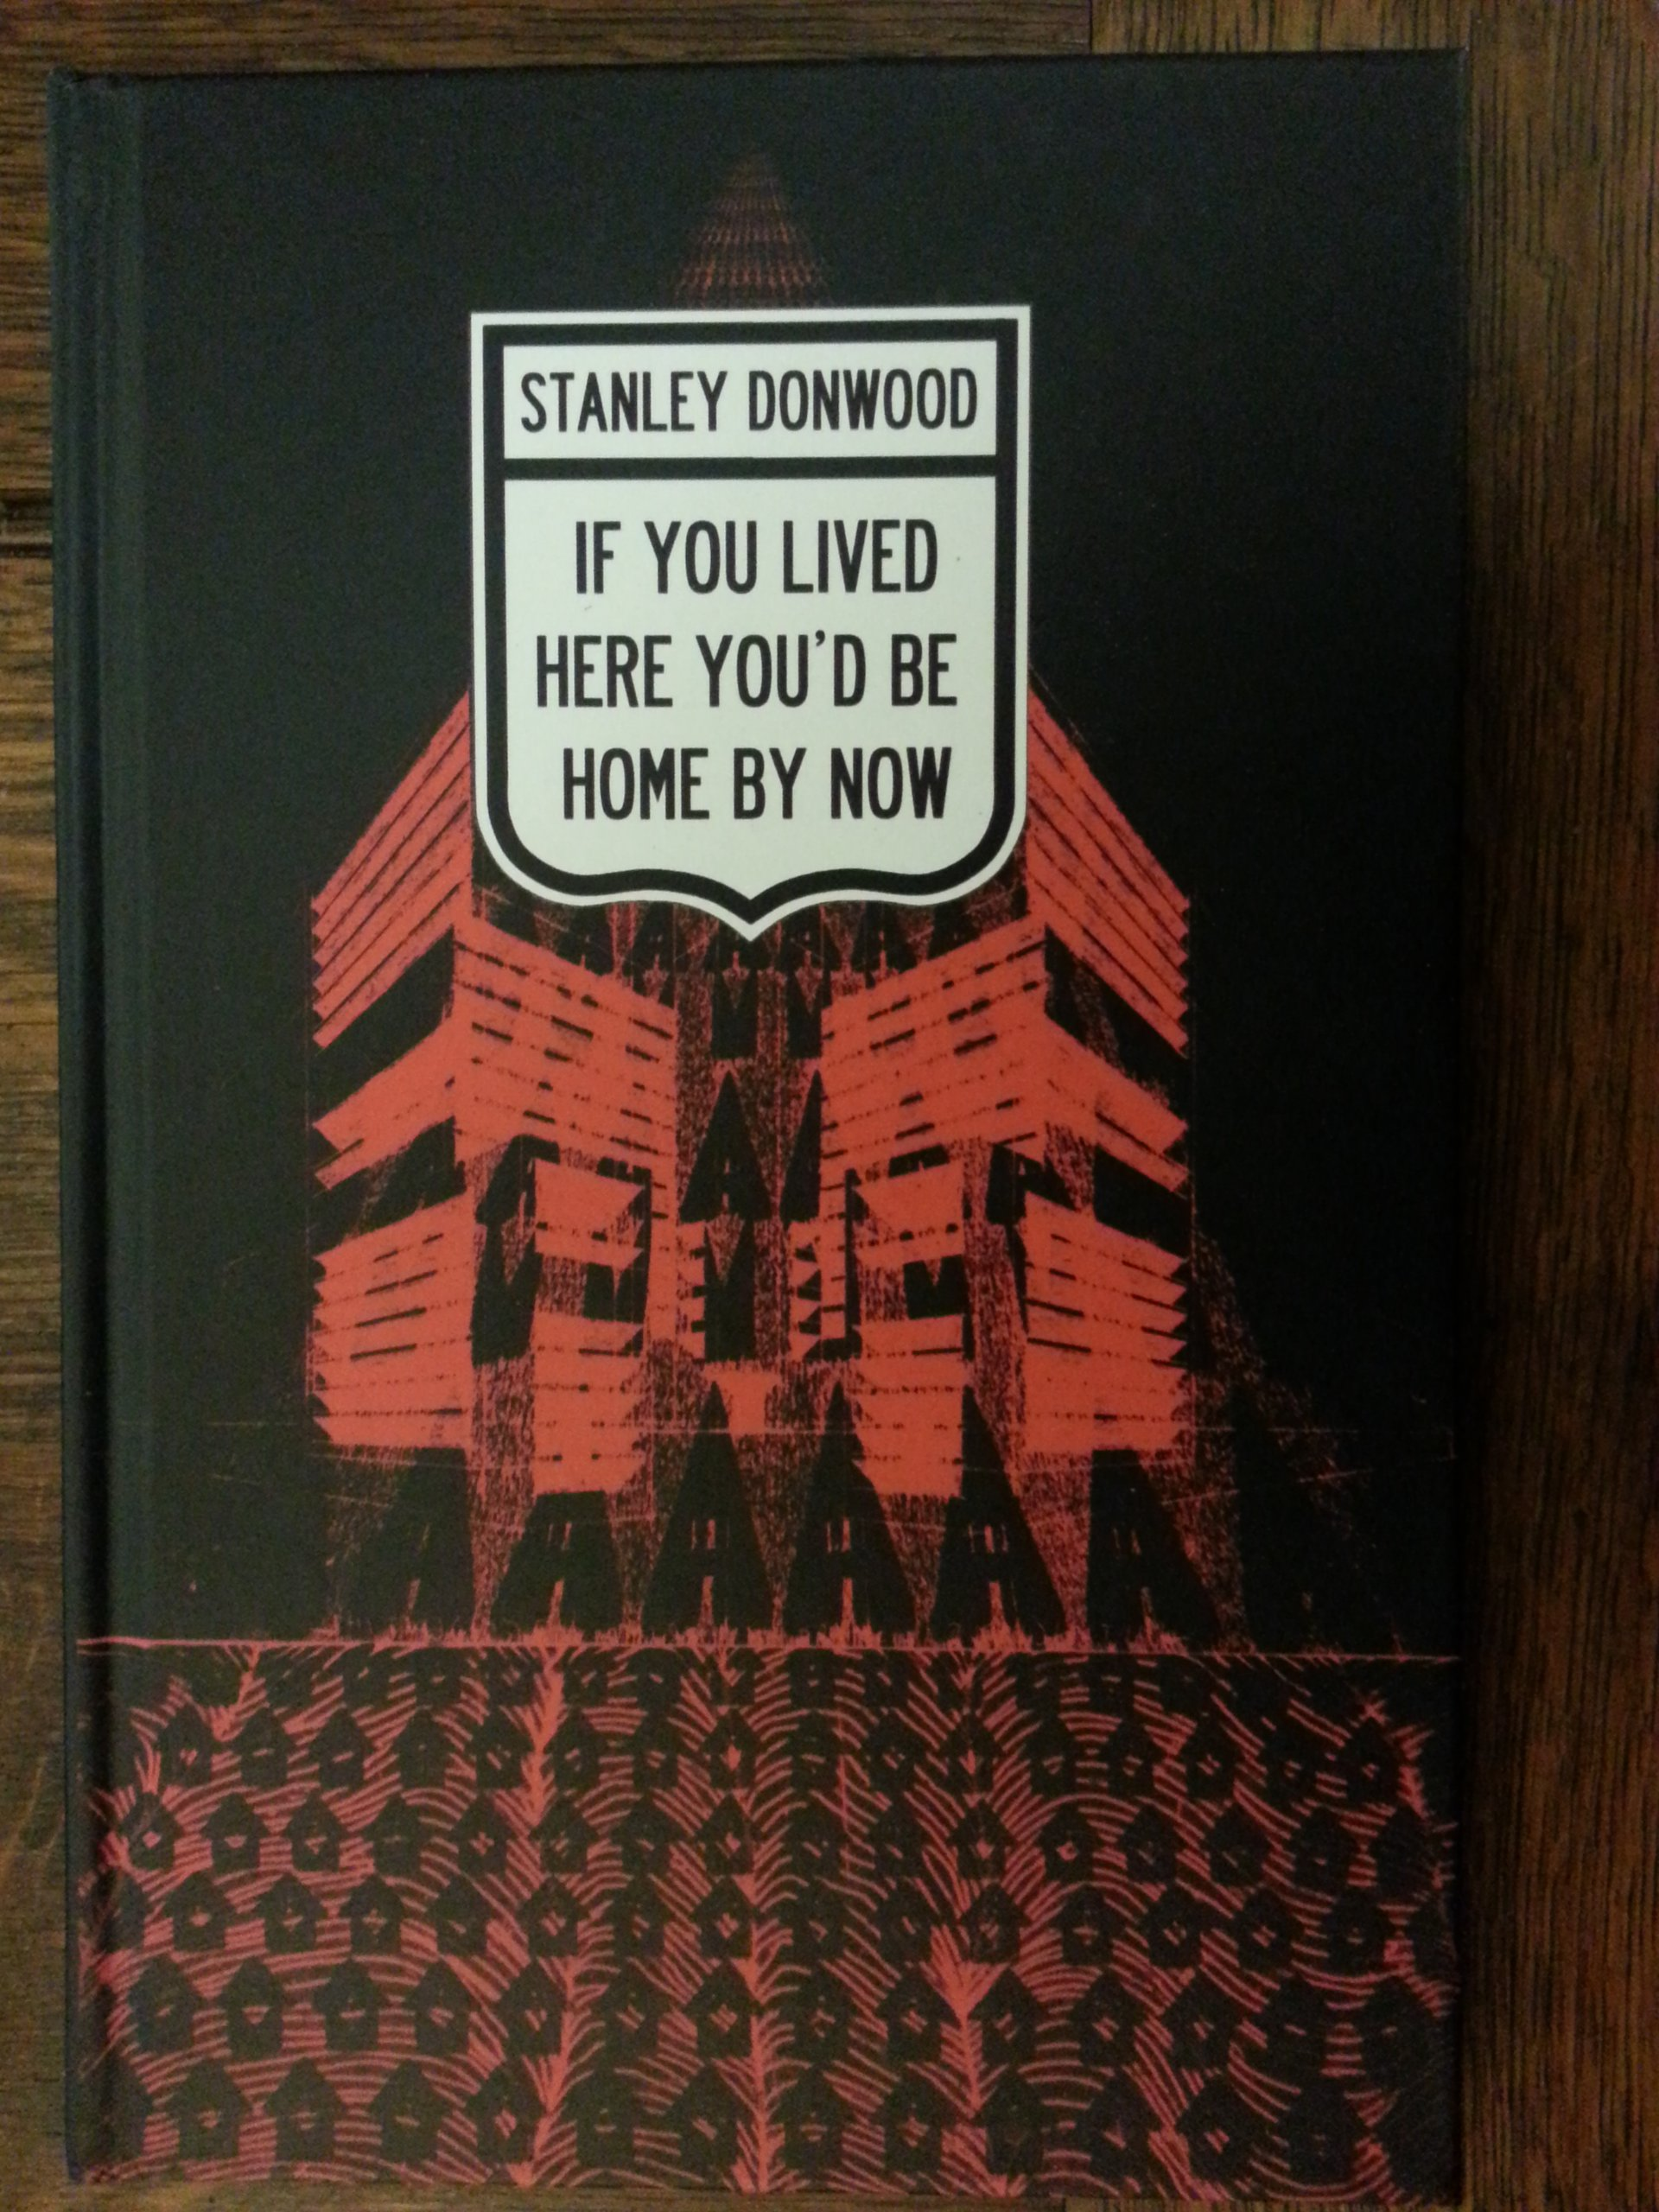 If You Lived Here Youd Be Cool By Now >> If You Lived Here You D Be Home By Now Stanley Donwood Amazon Com